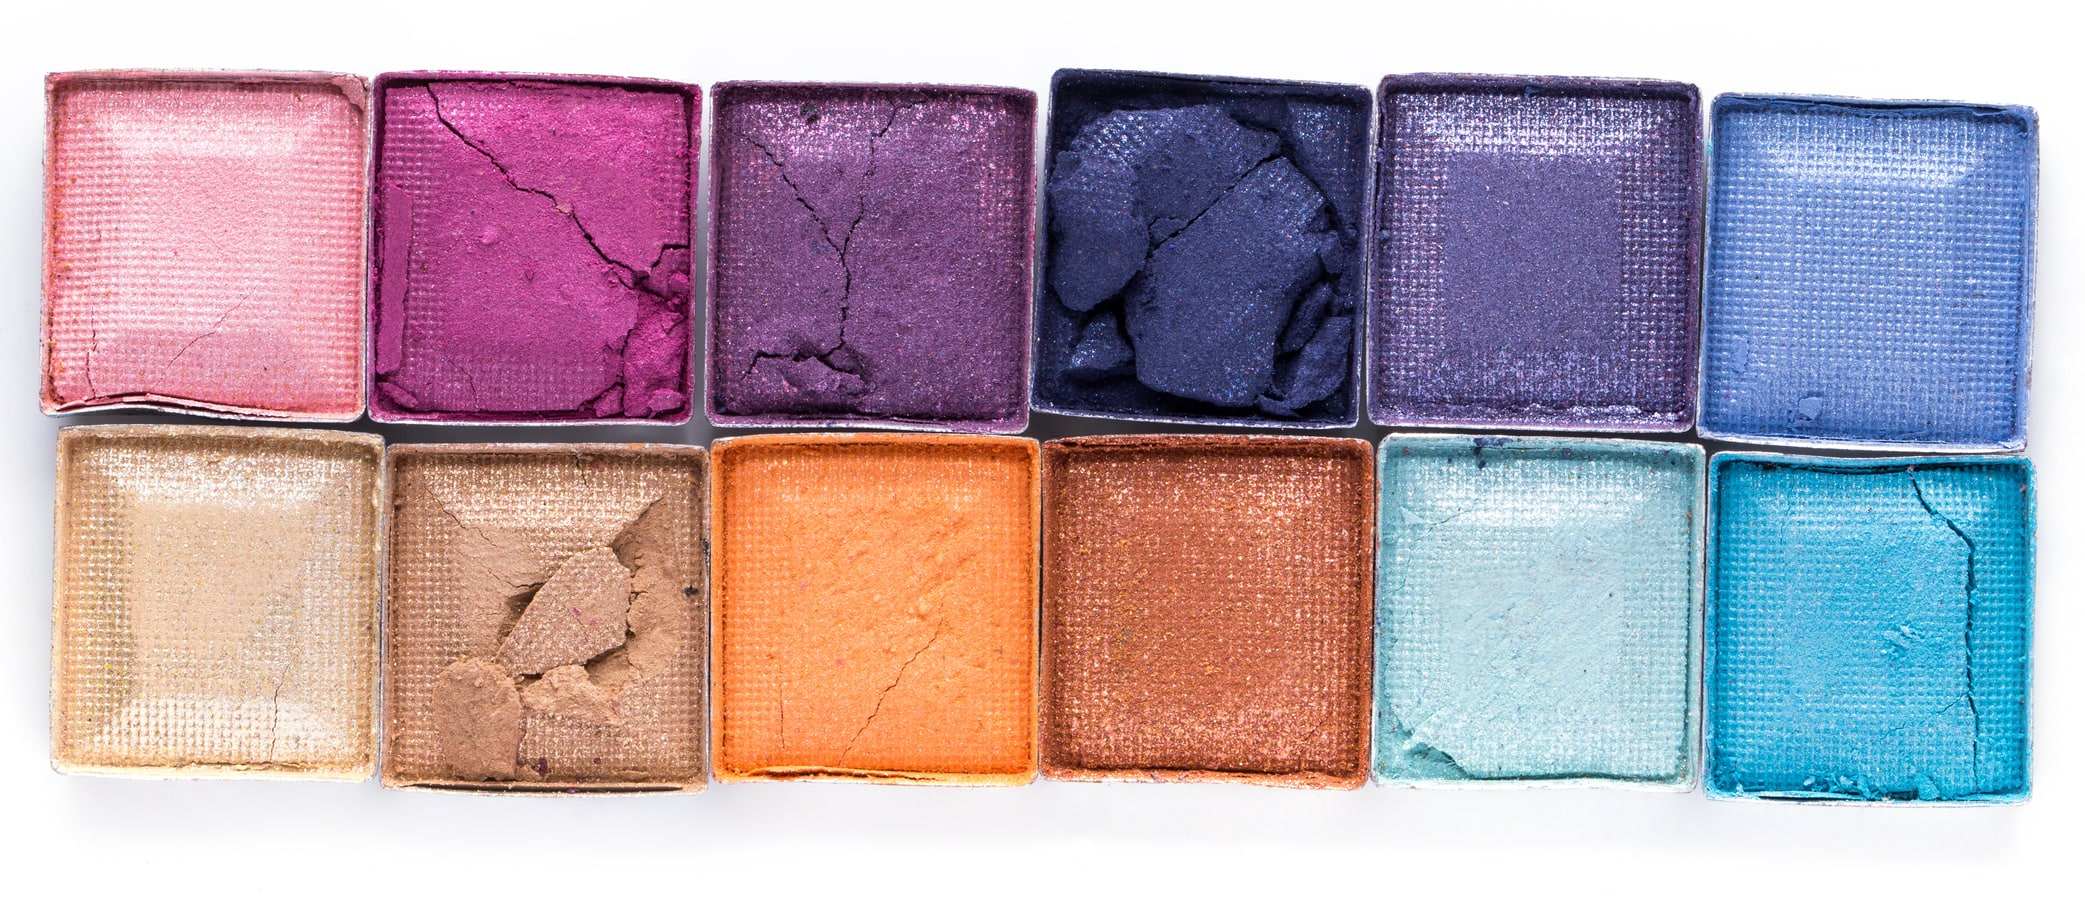 Eyeshadow do's and don't